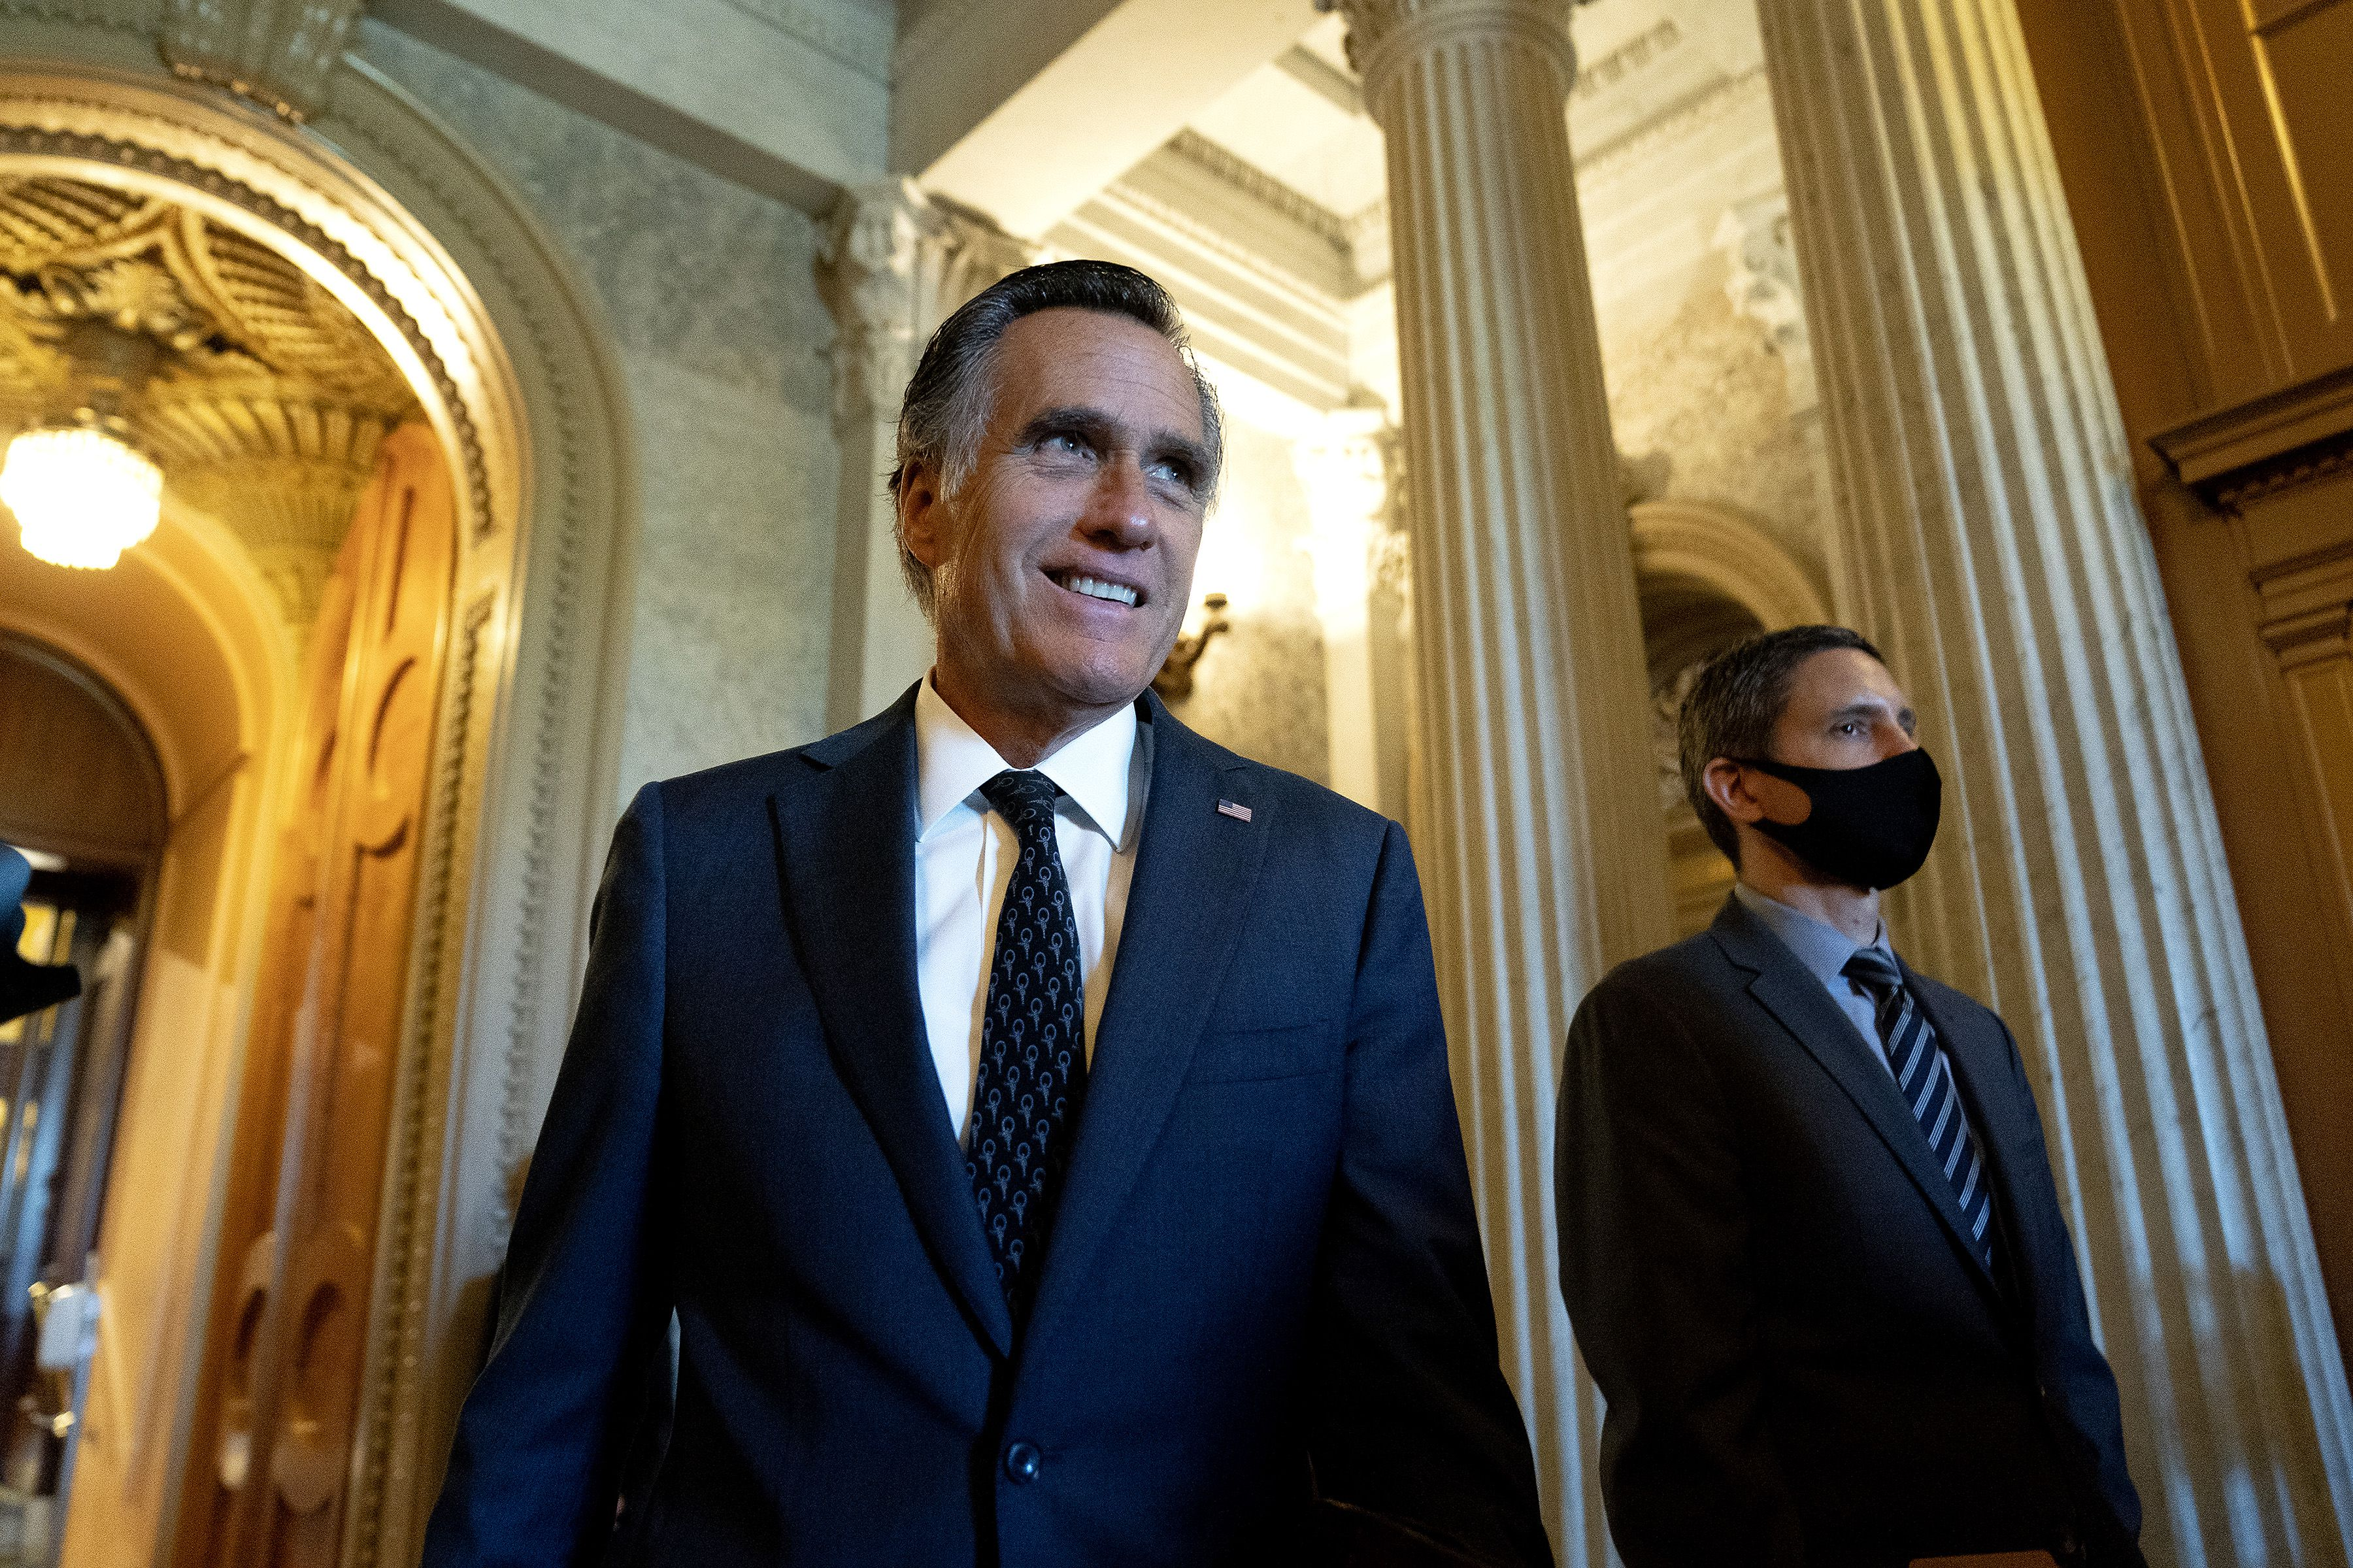 (Stefani Reynolds | The New York Times) Sen. Mitt Romney, R-Utah, departs the Senate Chamber at the Capitol in Washington on Wednesday, May 19, 2021. Romney was awarded the Profile in Courage Award from the Kennedy Family Foundation.